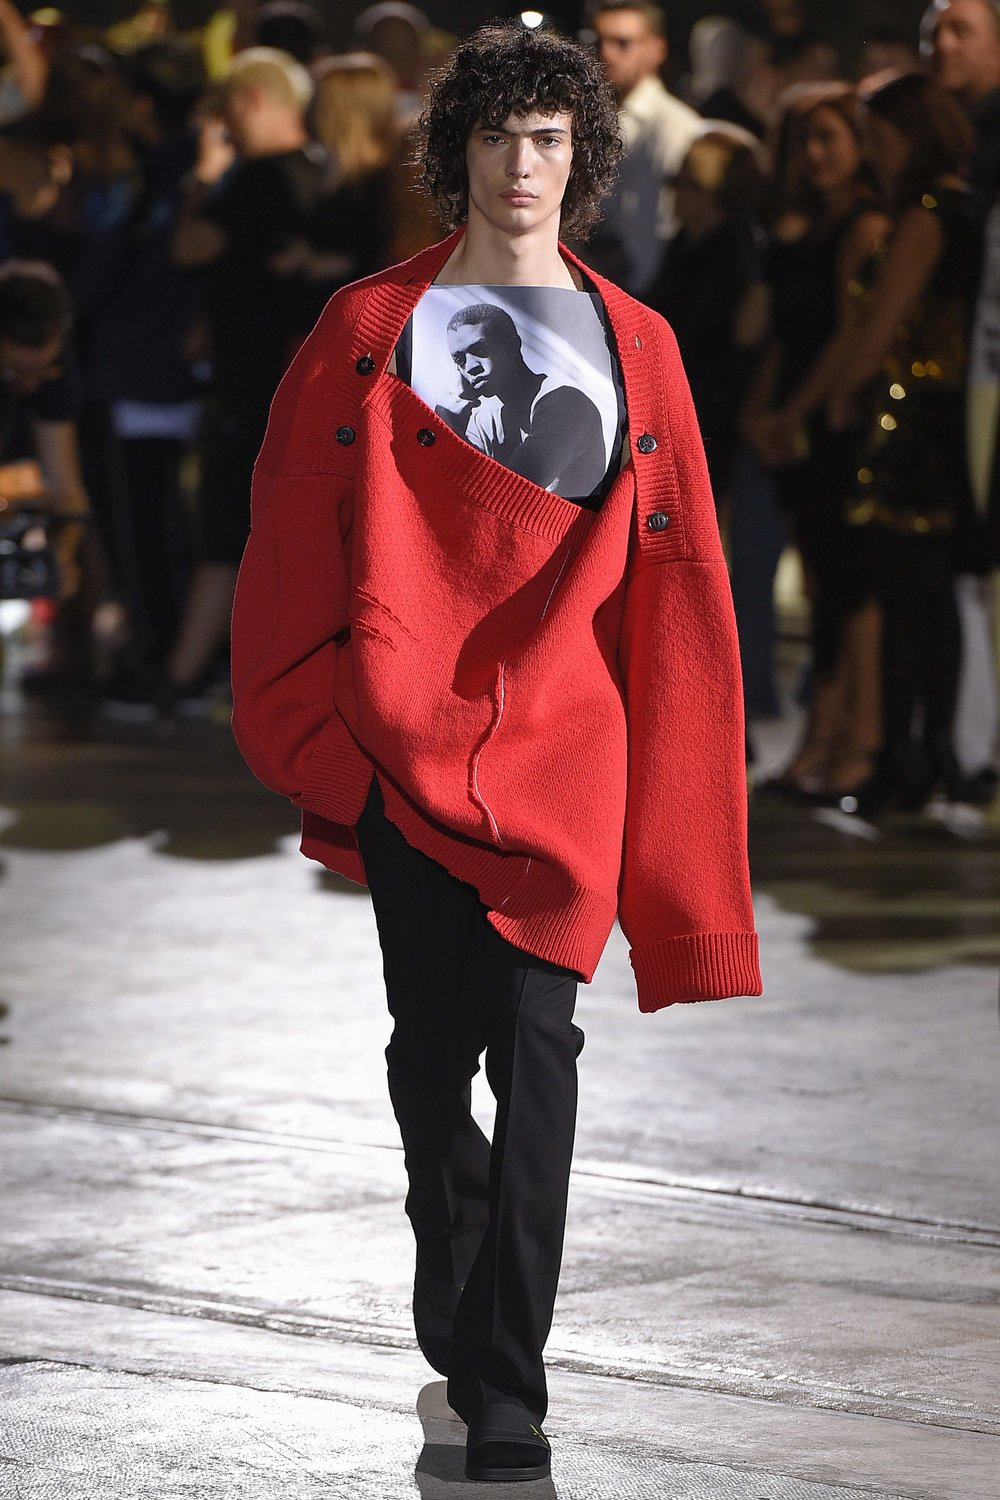 Raf Simons SS17 / Photo: vogue.com